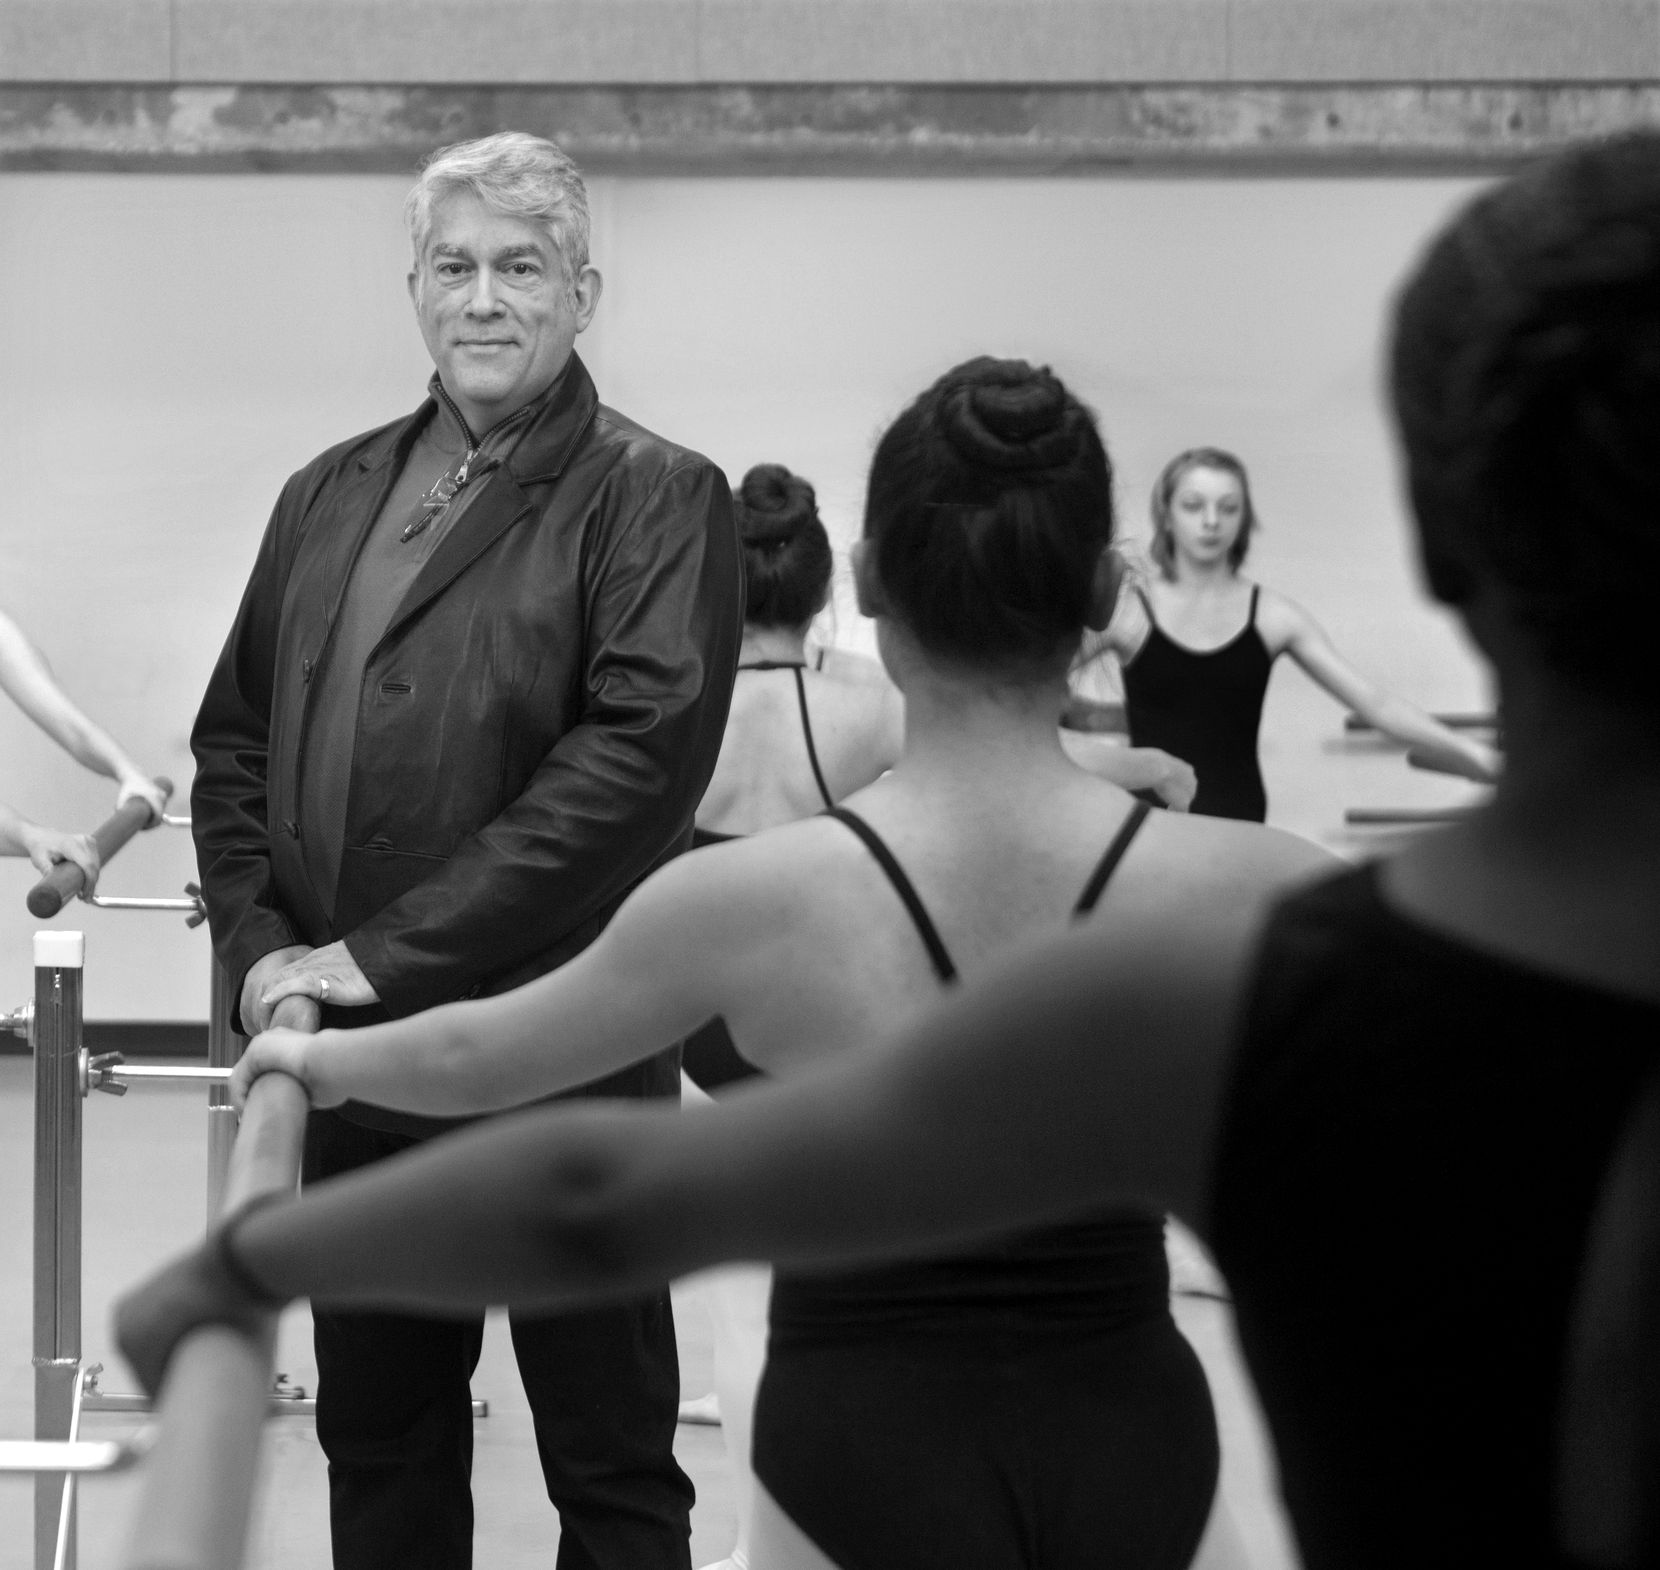 Charles Santos, executive director and artistic director of TITAS. Photographed with dance students in class at the Booker T. Washington High School for the Performing and Visual Arts in Dallas in 2015.